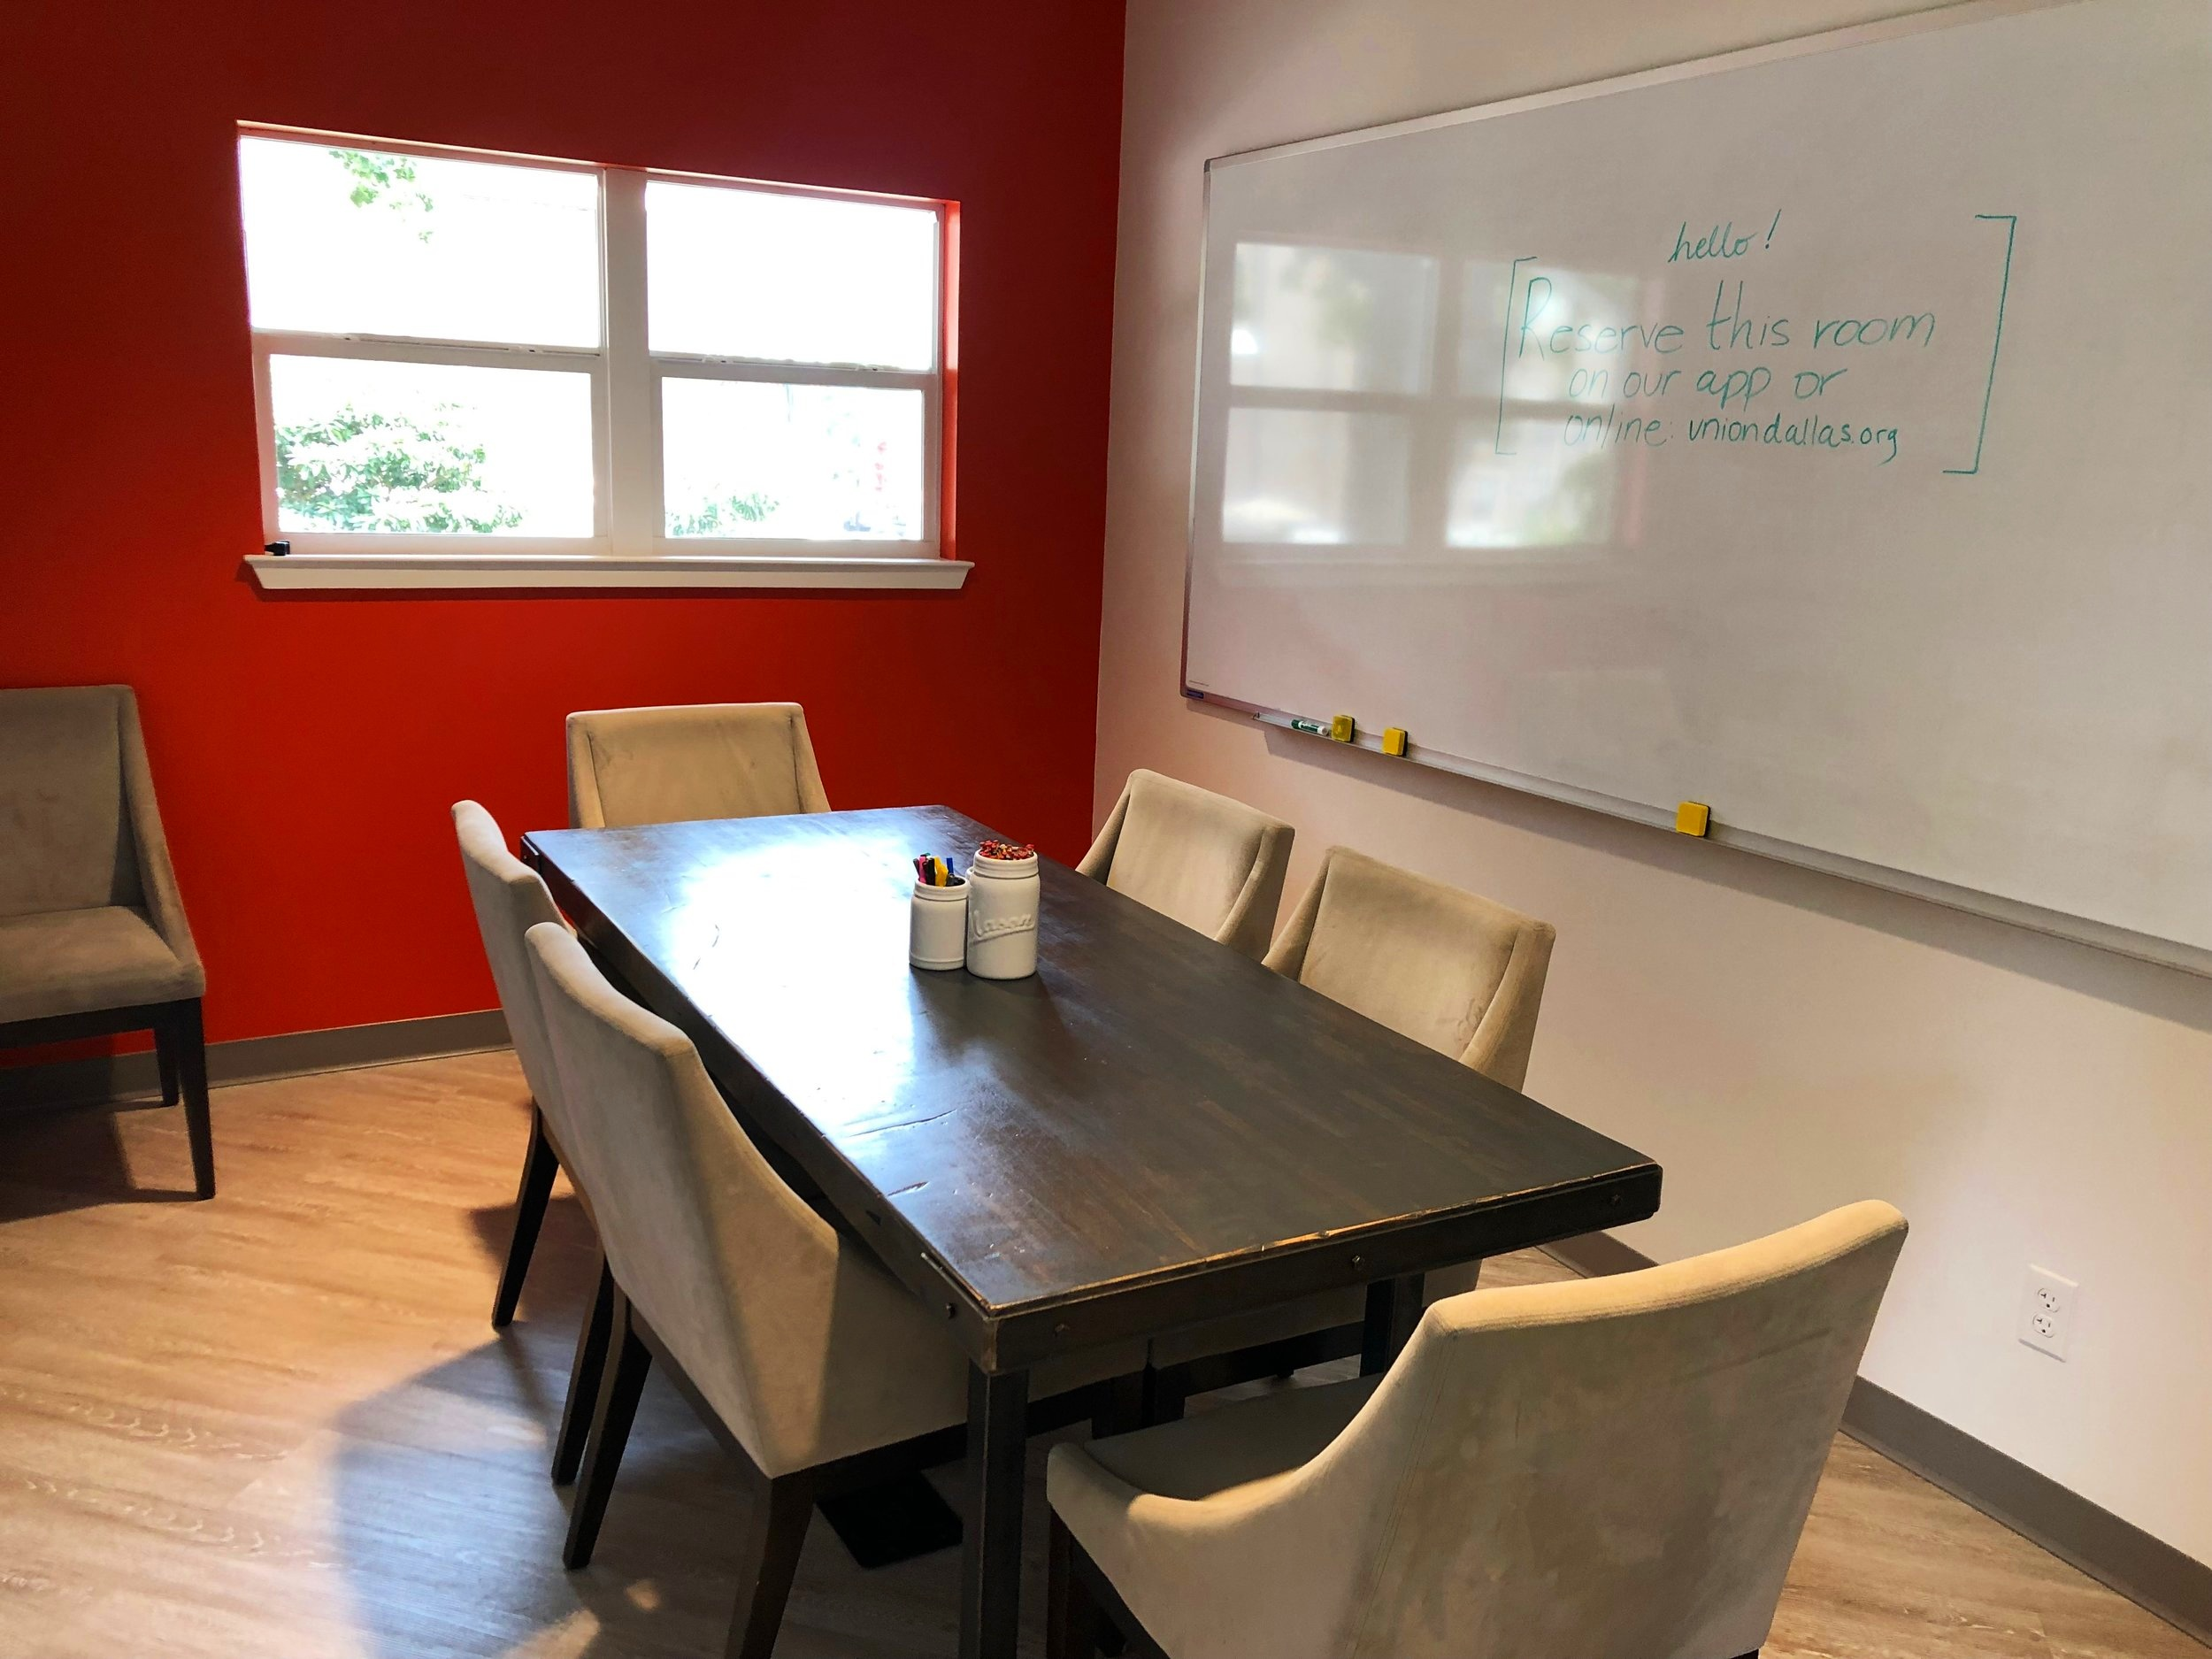 Upstairs Conference Room - Seating for 6-8, flatscreen with Apple TV, and a huge whiteboard for all your brilliant ideas! $20/hr.